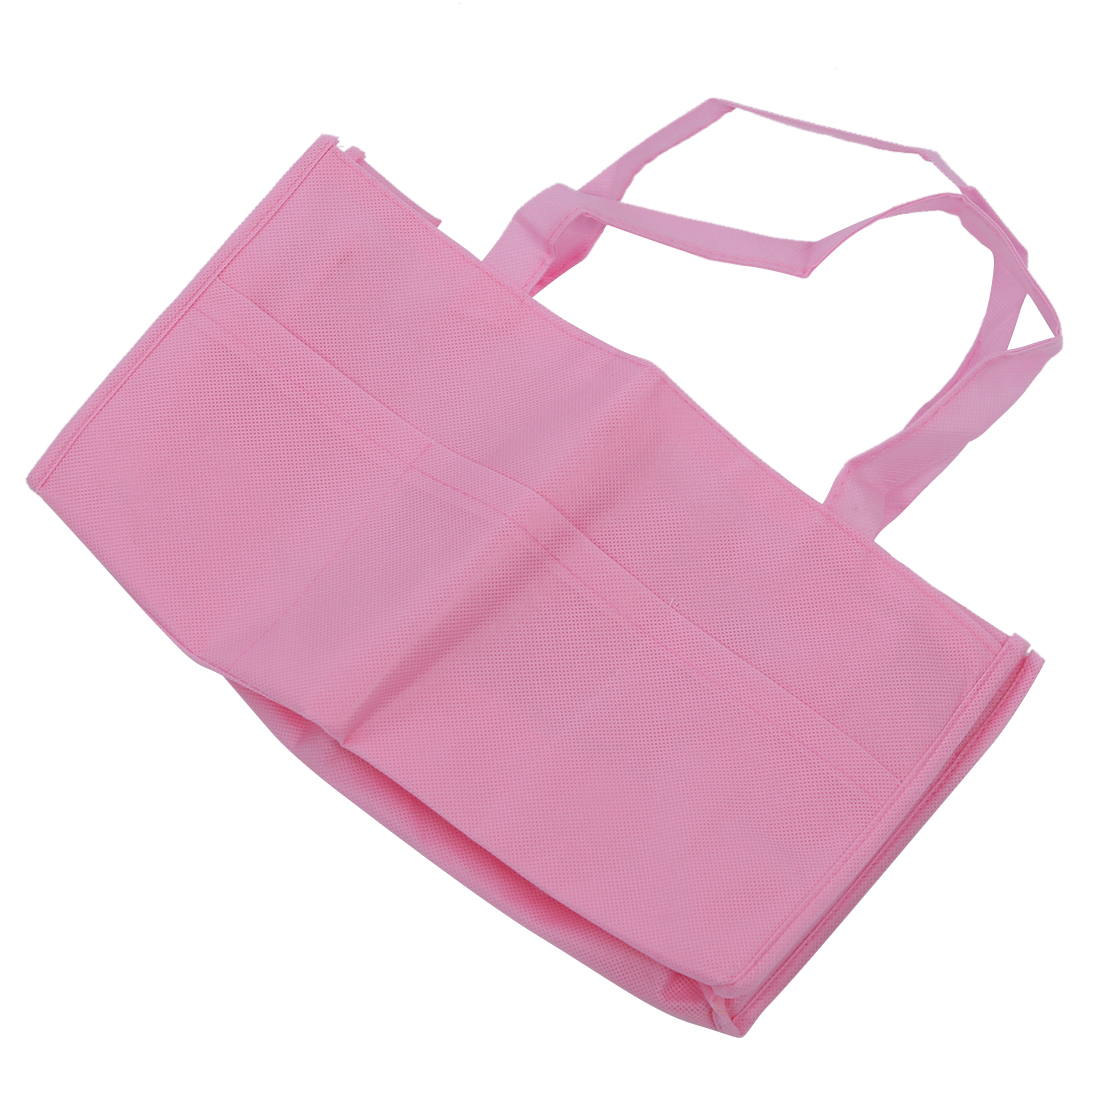 Mother-Travel-Nappy-Bag-for-Storage-Baby-Diaper-Nappies-Clothes-P-S-L2C3